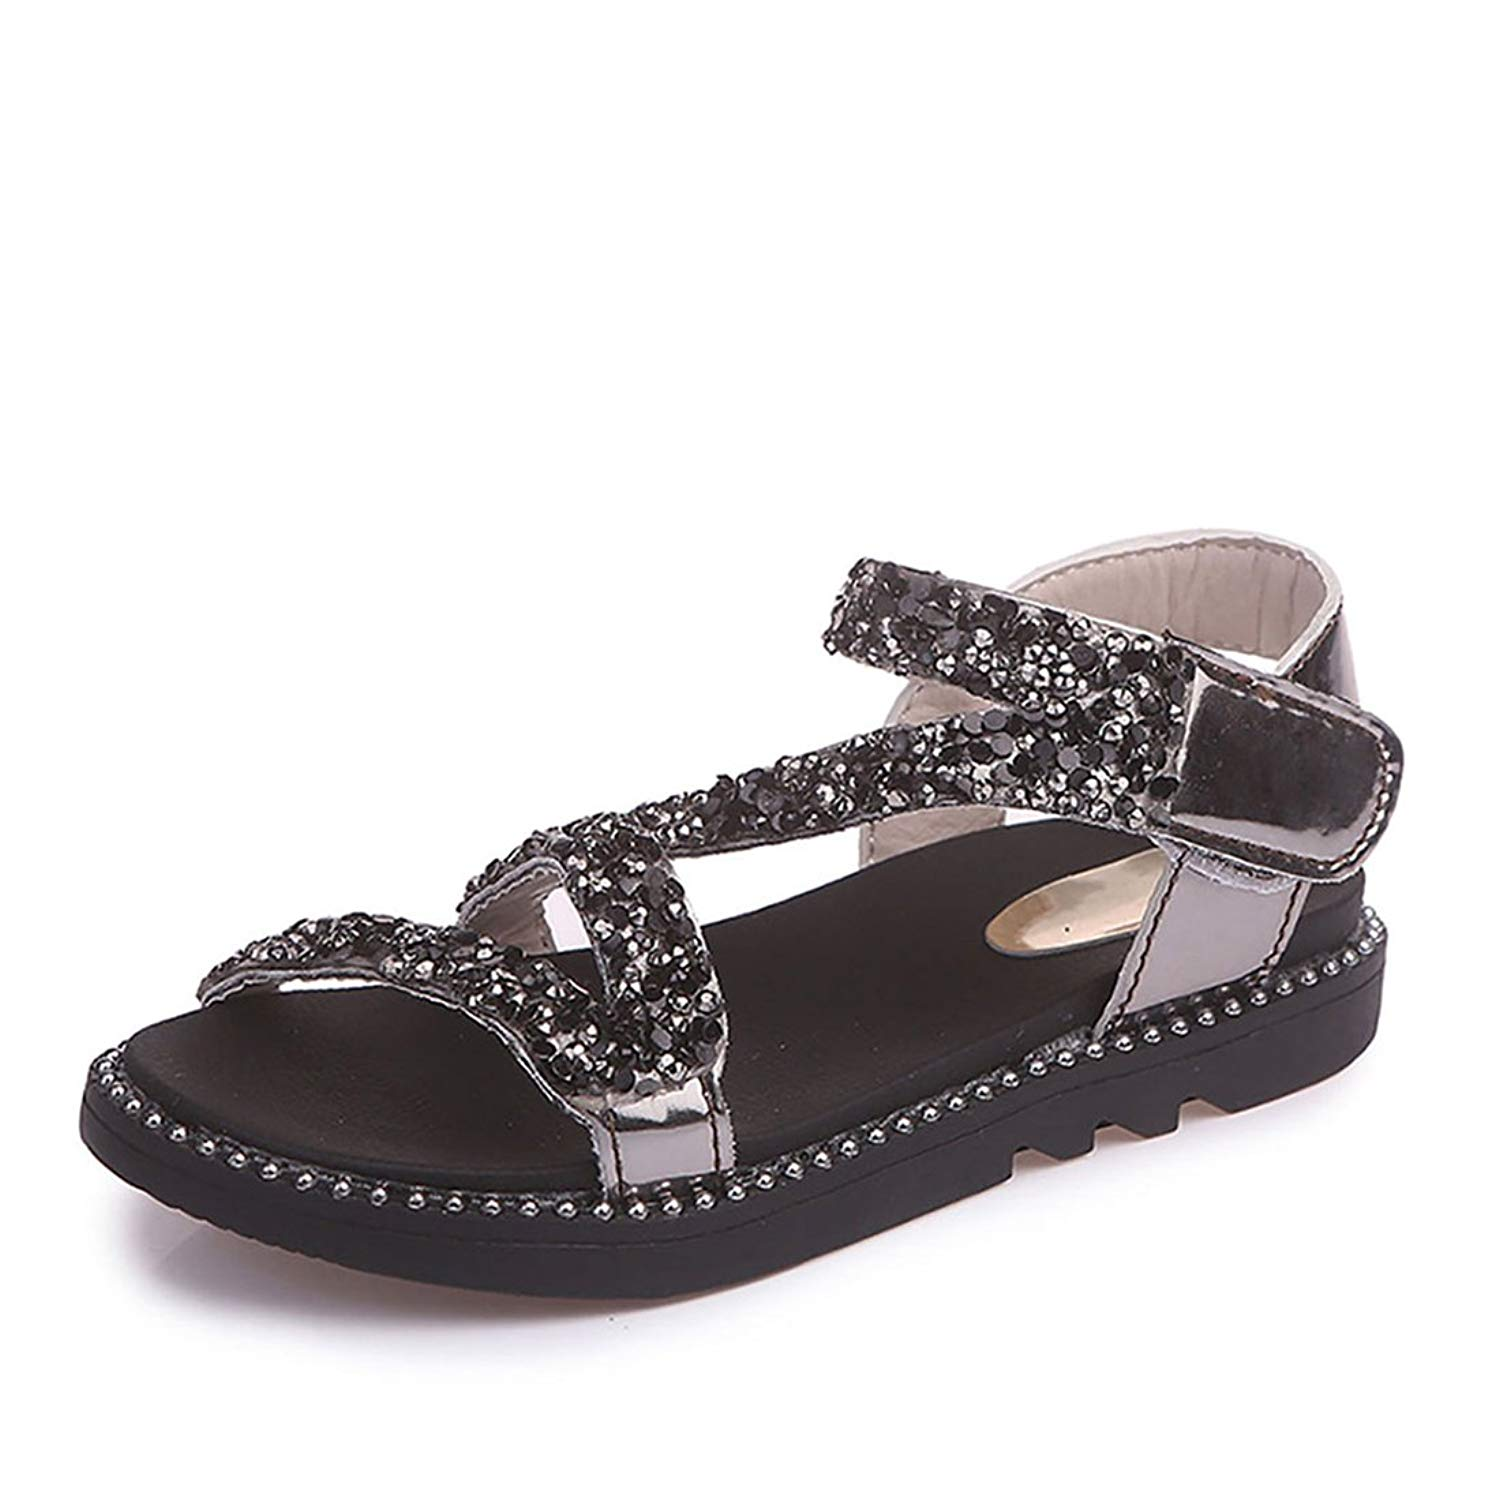 Girls Sandals,YIBLBOX Kids Toddlers Glitter Ankle Strap Summer Flat Beach Shoes